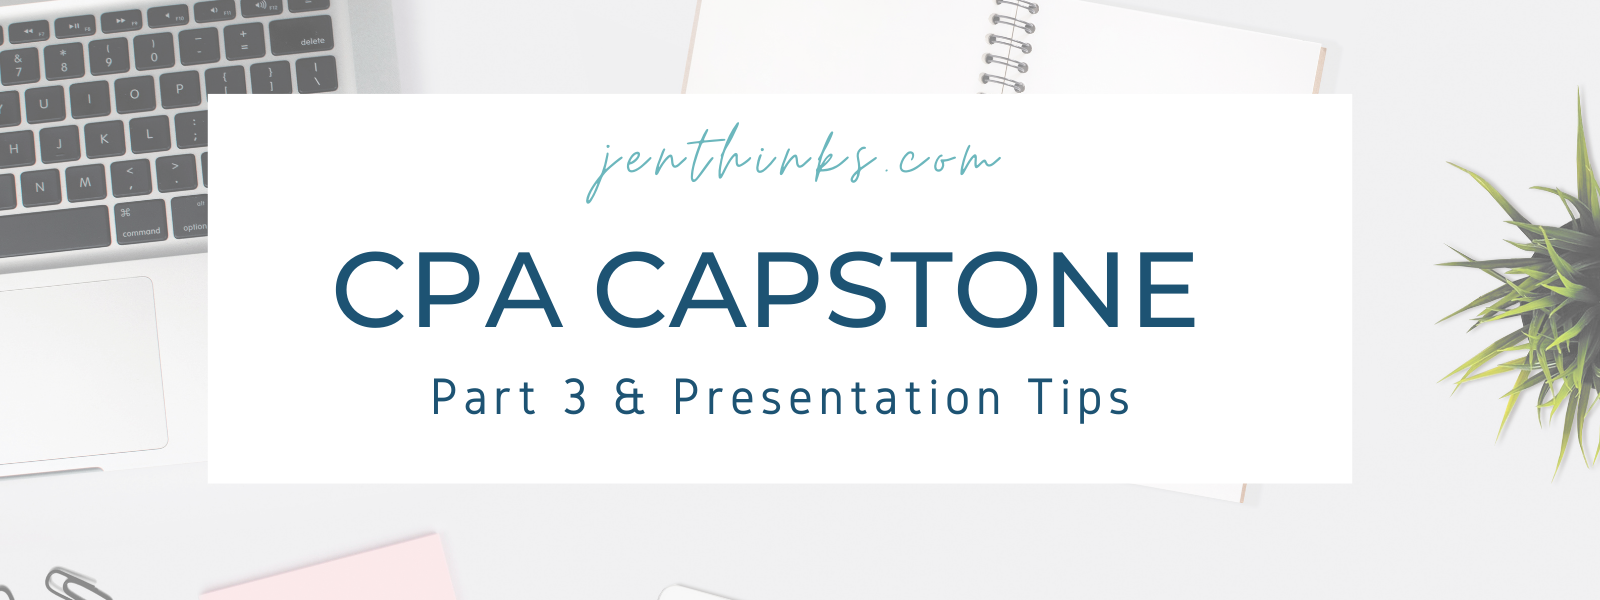 CPA Capstone 1 Tips For Part 3 & Presentation